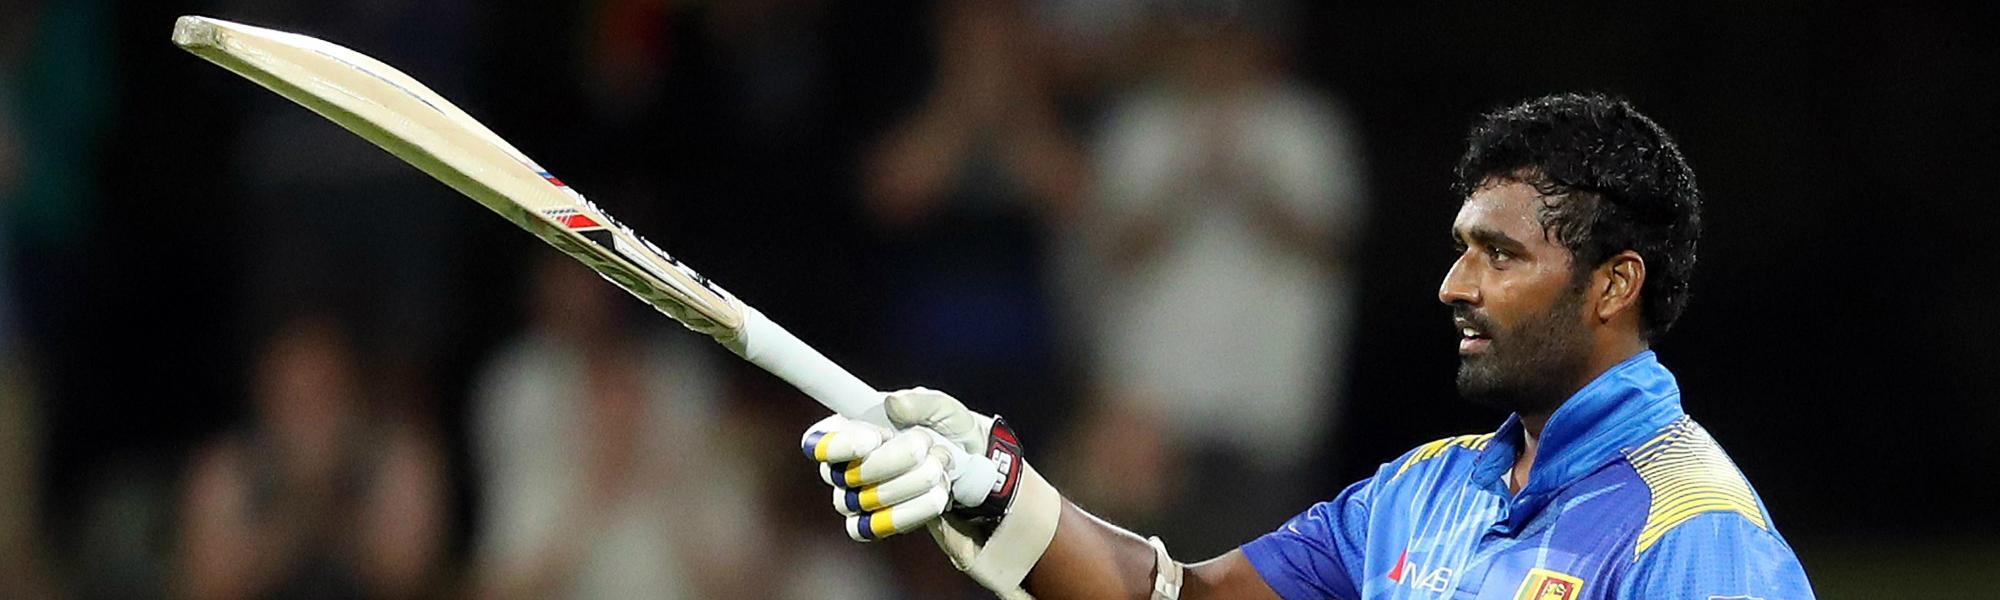 Thisara Perera's magnificent knock in the previous ODI was not enough to snatch victory